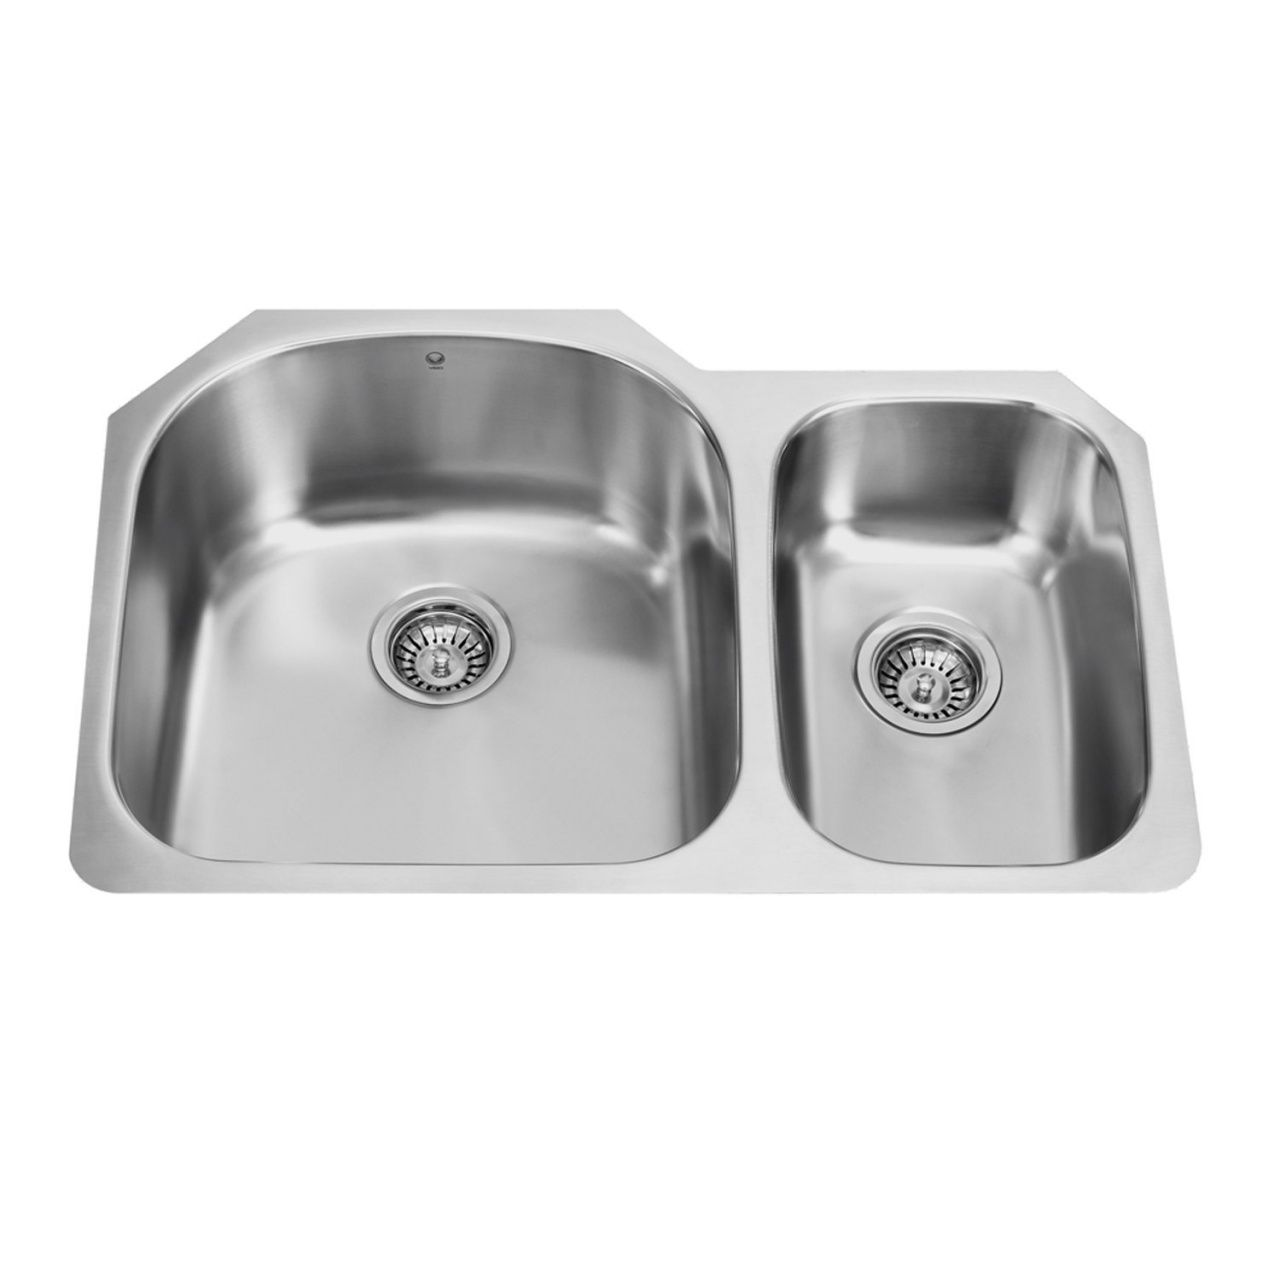 Kitchen Sink Size For 30 Inch Cabinet In 2020 Stainless Steel Kitchen Sink Undermount Double Bowl Kitchen Sink Stainless Steel Kitchen Sink